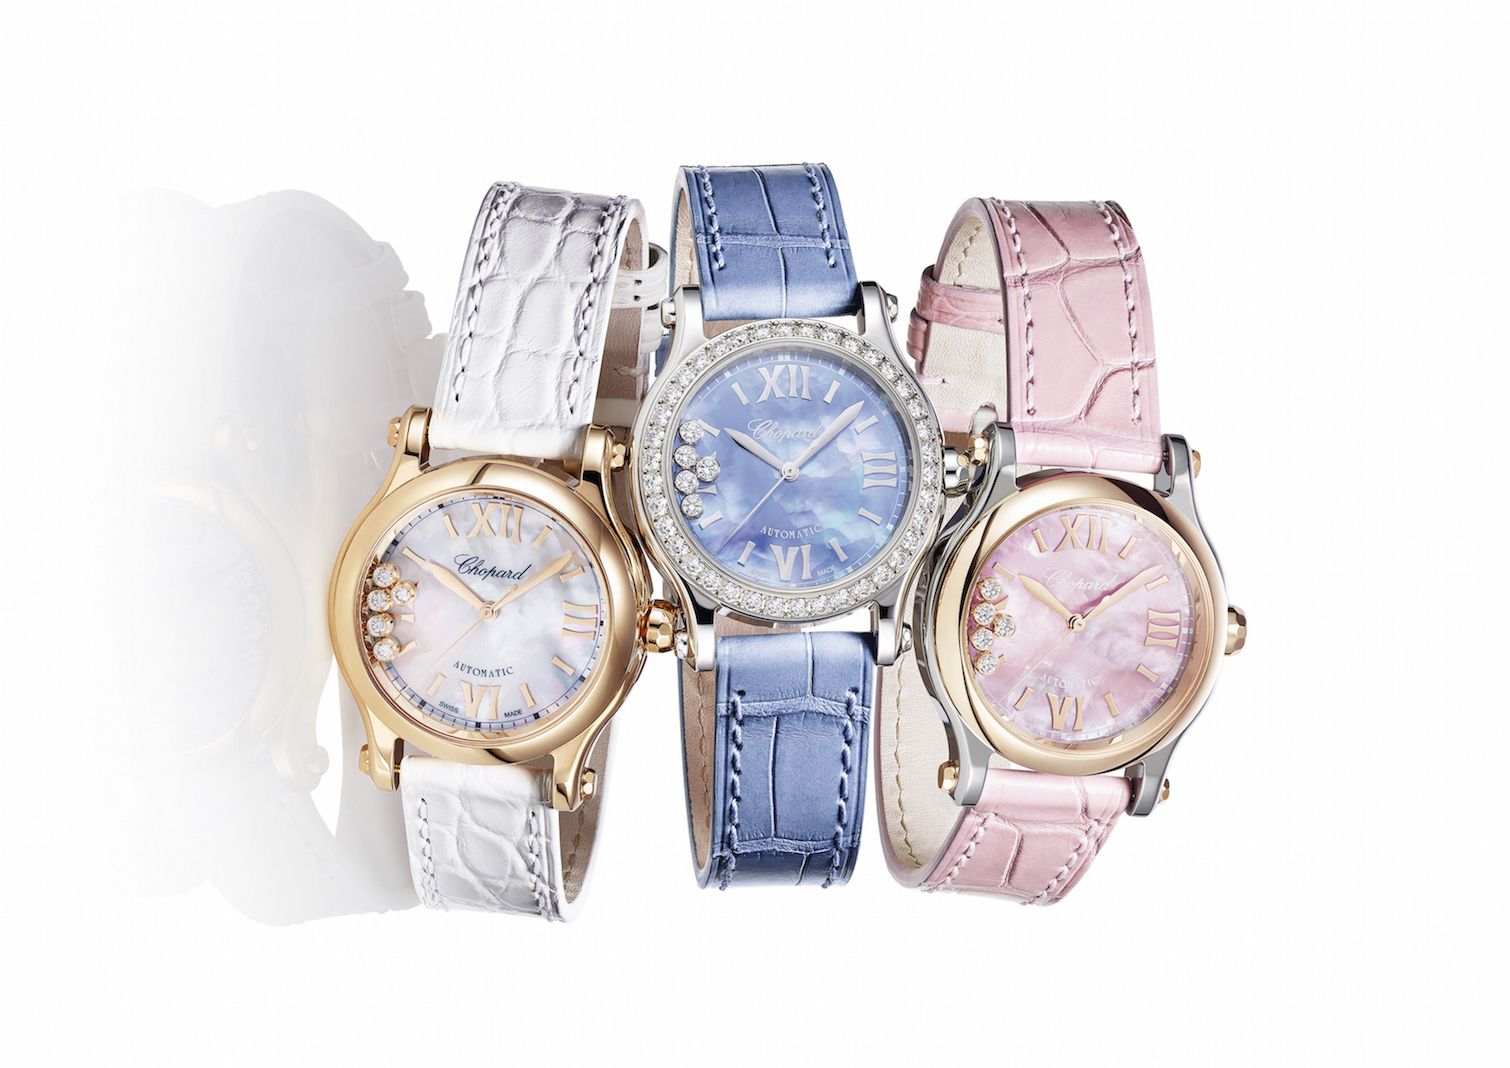 The new line of Happy Sport watches comes with mother-of-pearl dials with pastel-coloured shades. (Photo: Courtesy of Chopard)